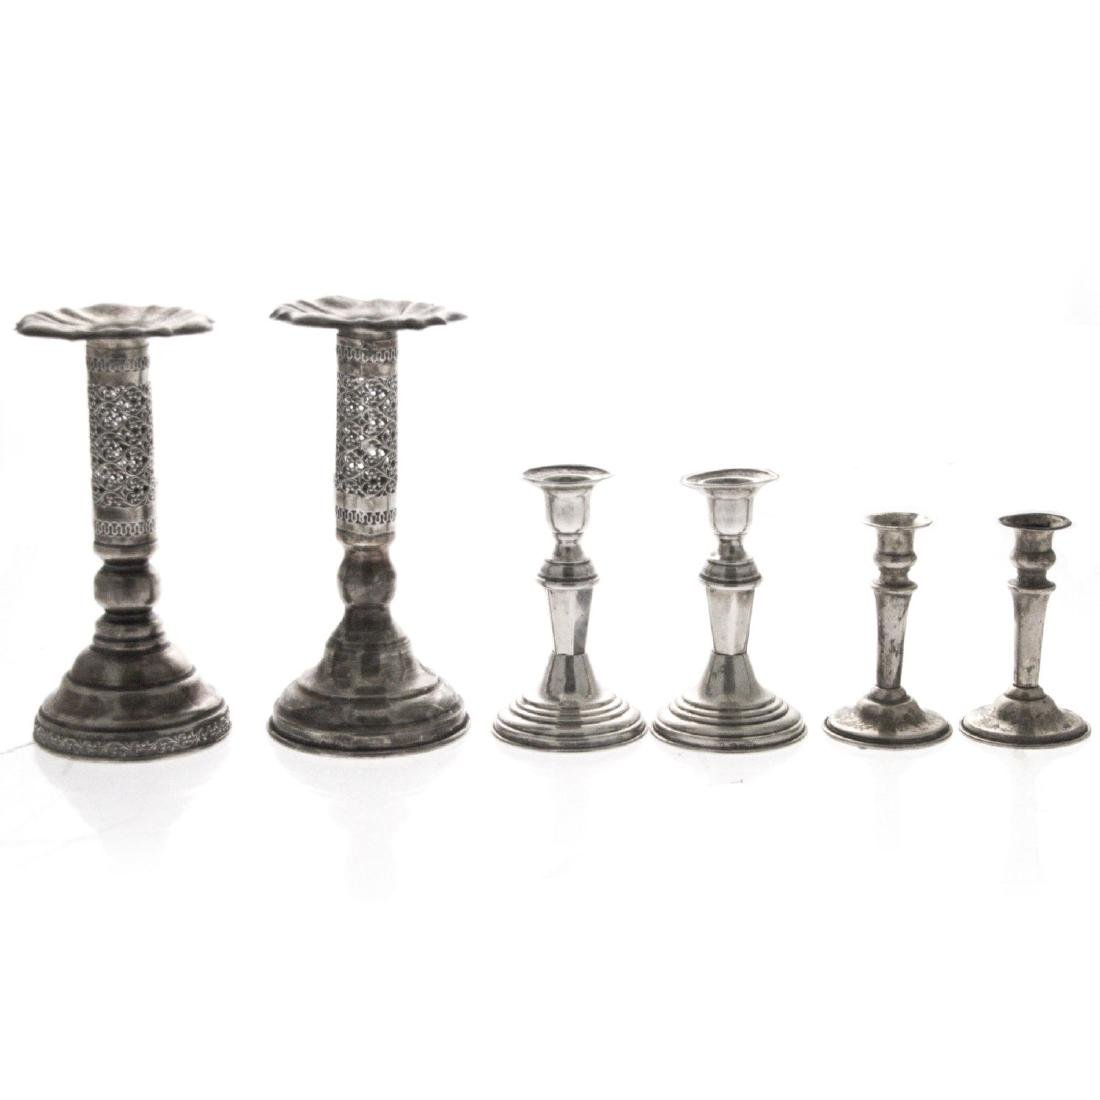 Three Pairs of Silver Candlesticks.